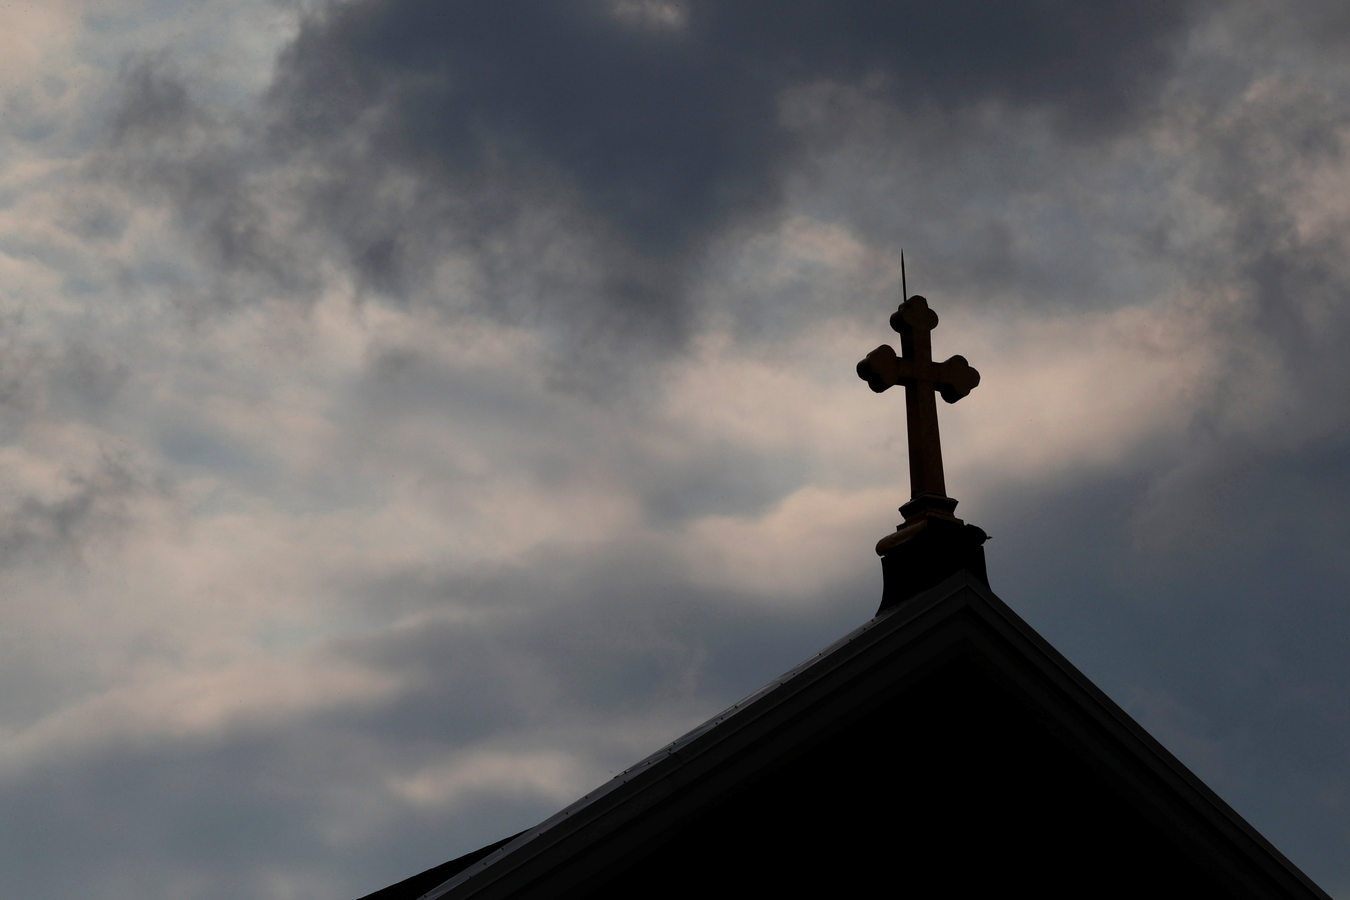 A crisis that is far from over: how the church can respond